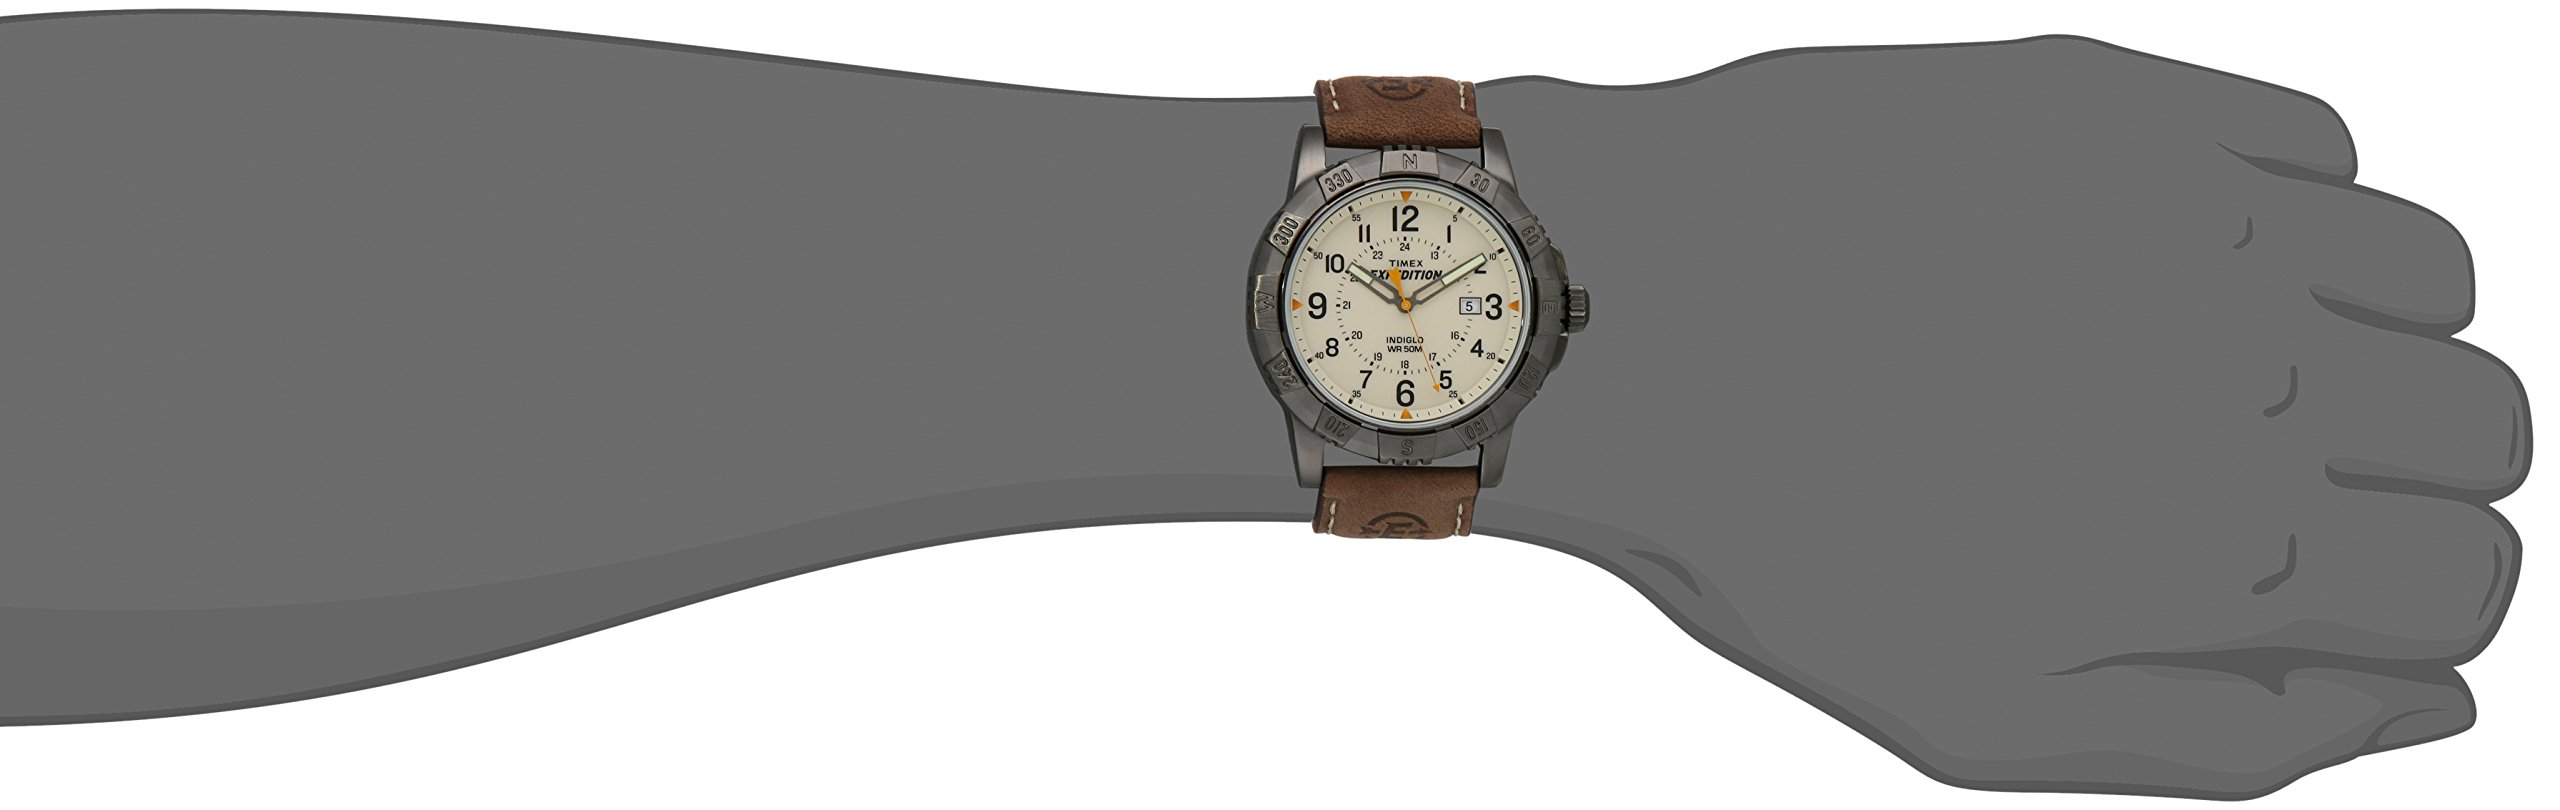 Timex Men's T49990 Expedition Rugged Metal Brown/Natural Leather Strap Watch by Timex (Image #3)